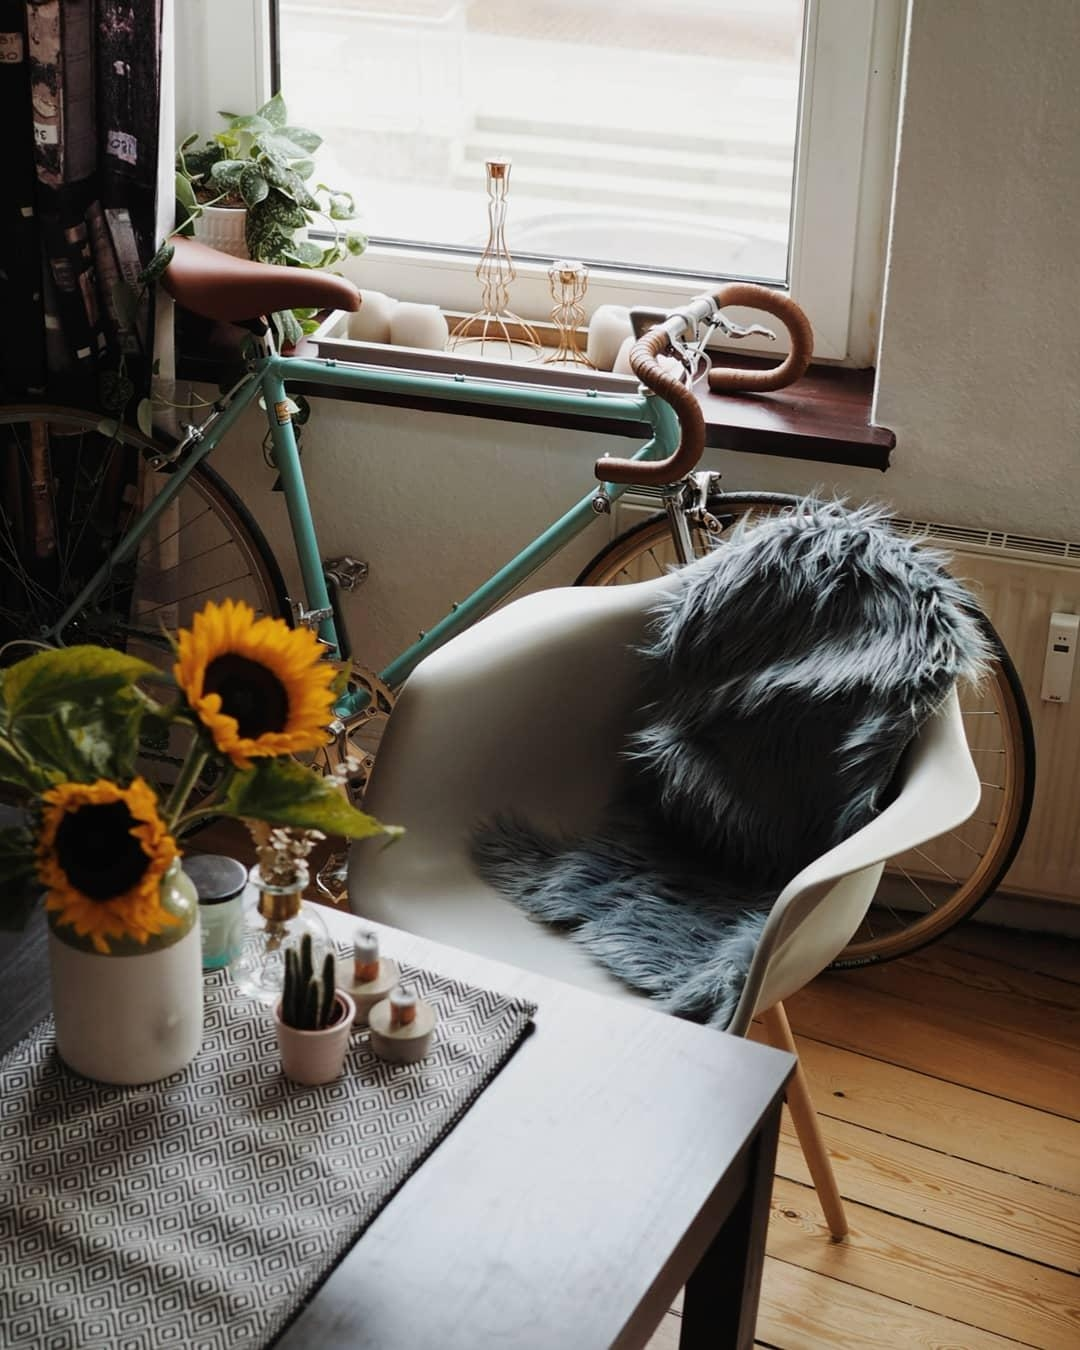 Advice from a sunflower : be bright, sunny and positive.  